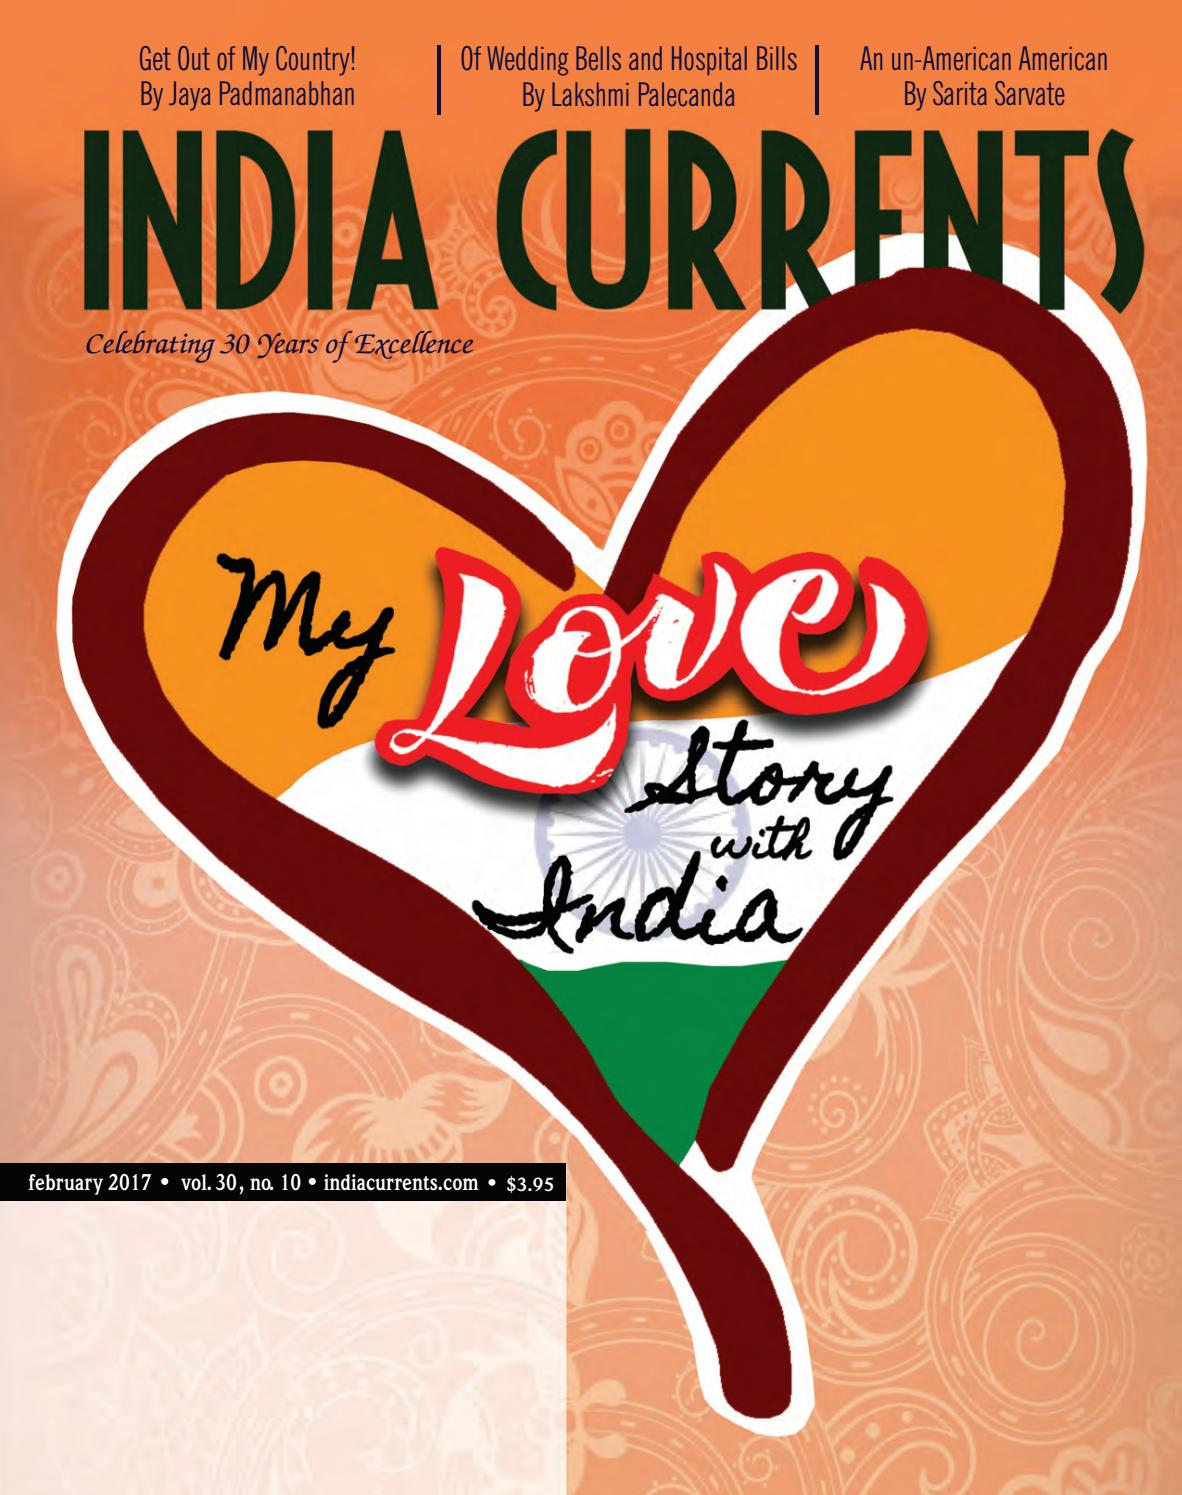 India currents february 2017 digital edition by india currents issuu fandeluxe Choice Image